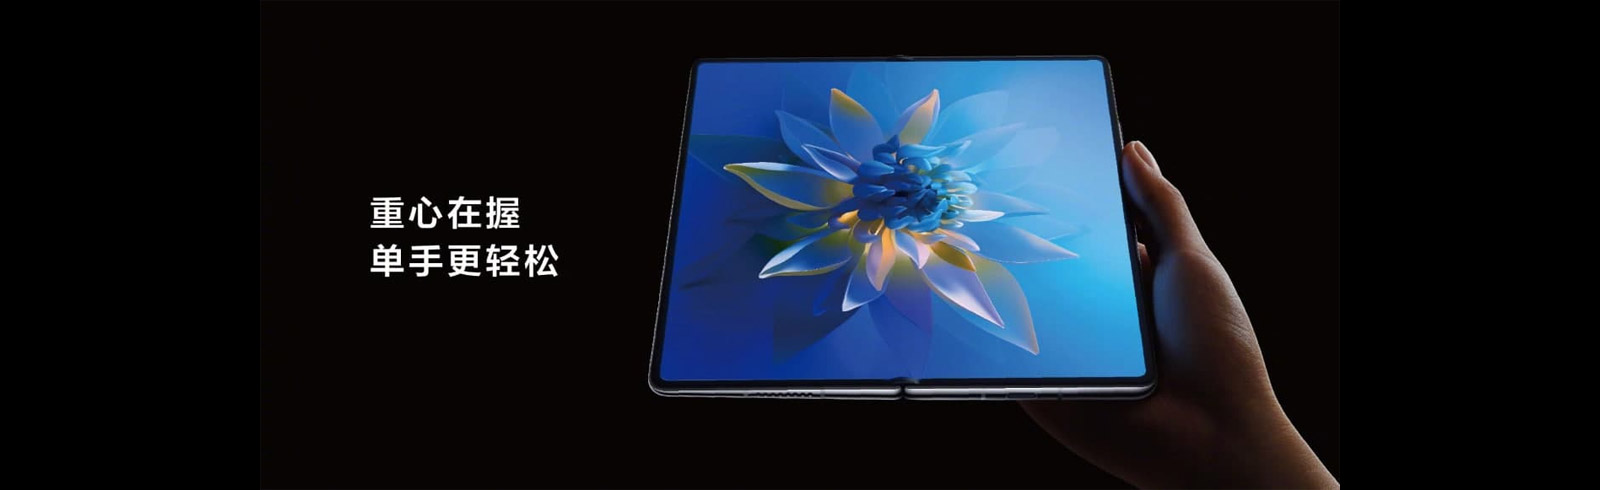 Huawei Mate X2 - specifications and price